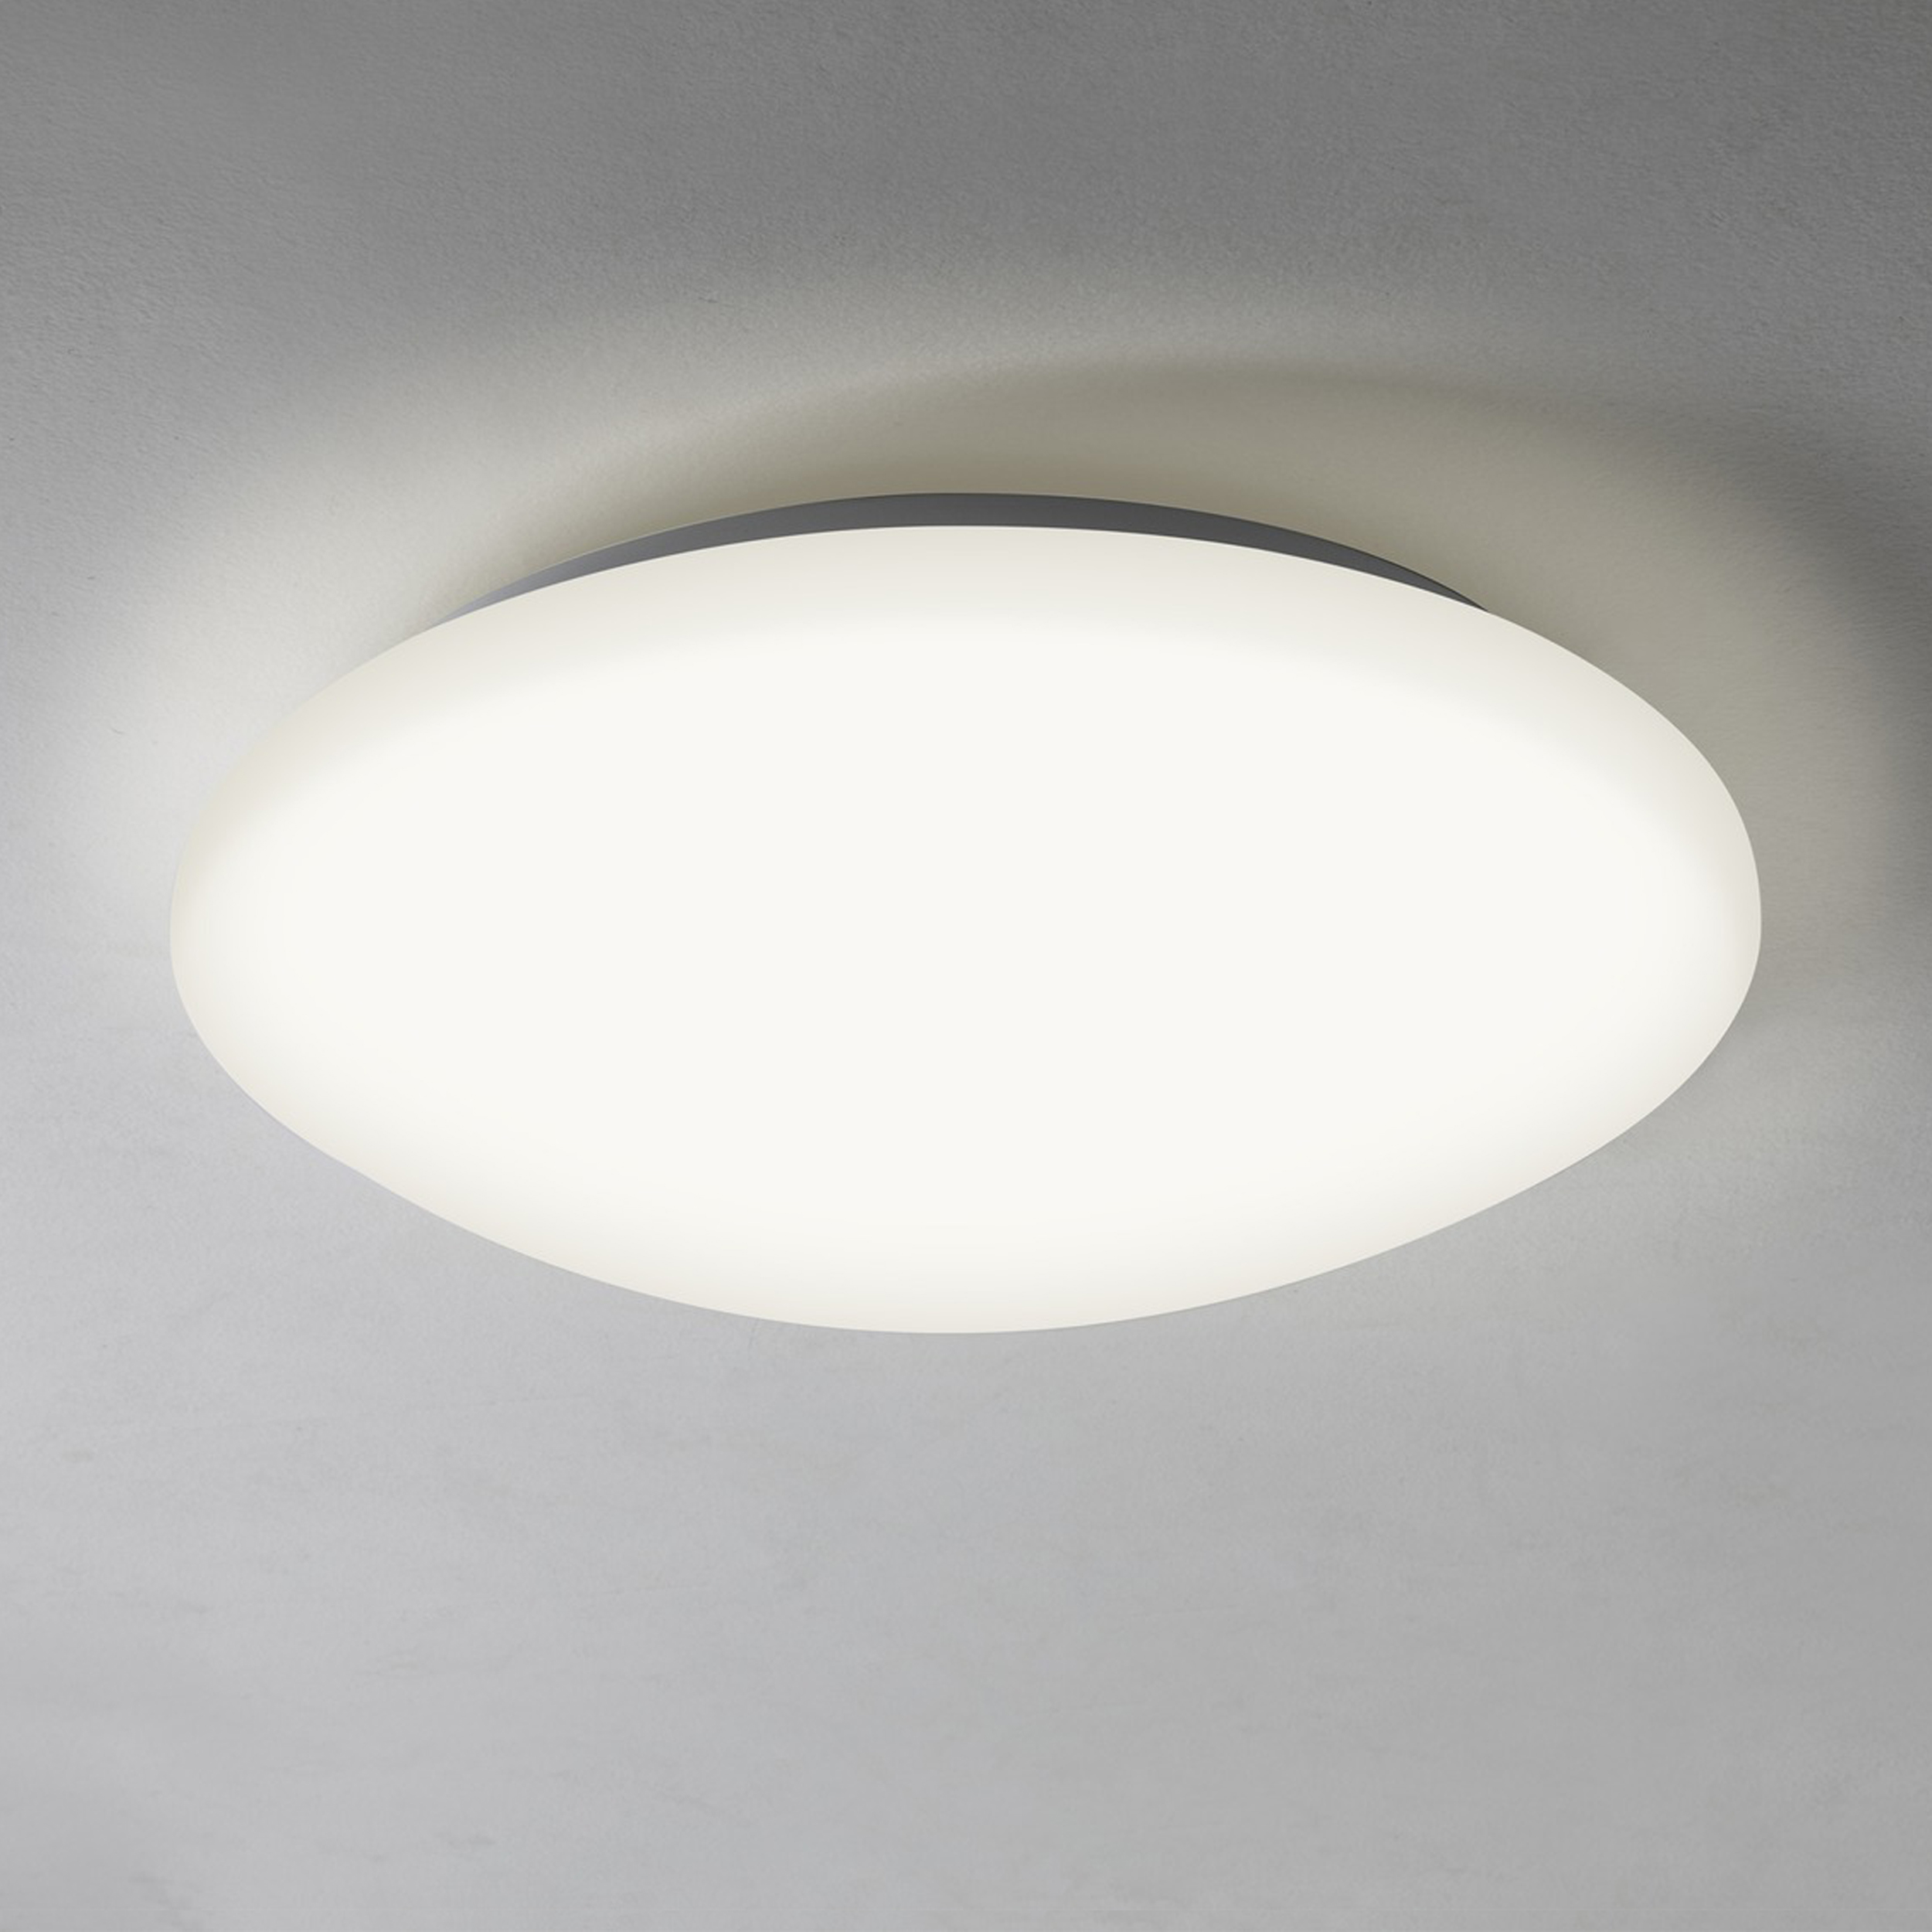 Astro Massa 300 Led Ceiling Light Matt White